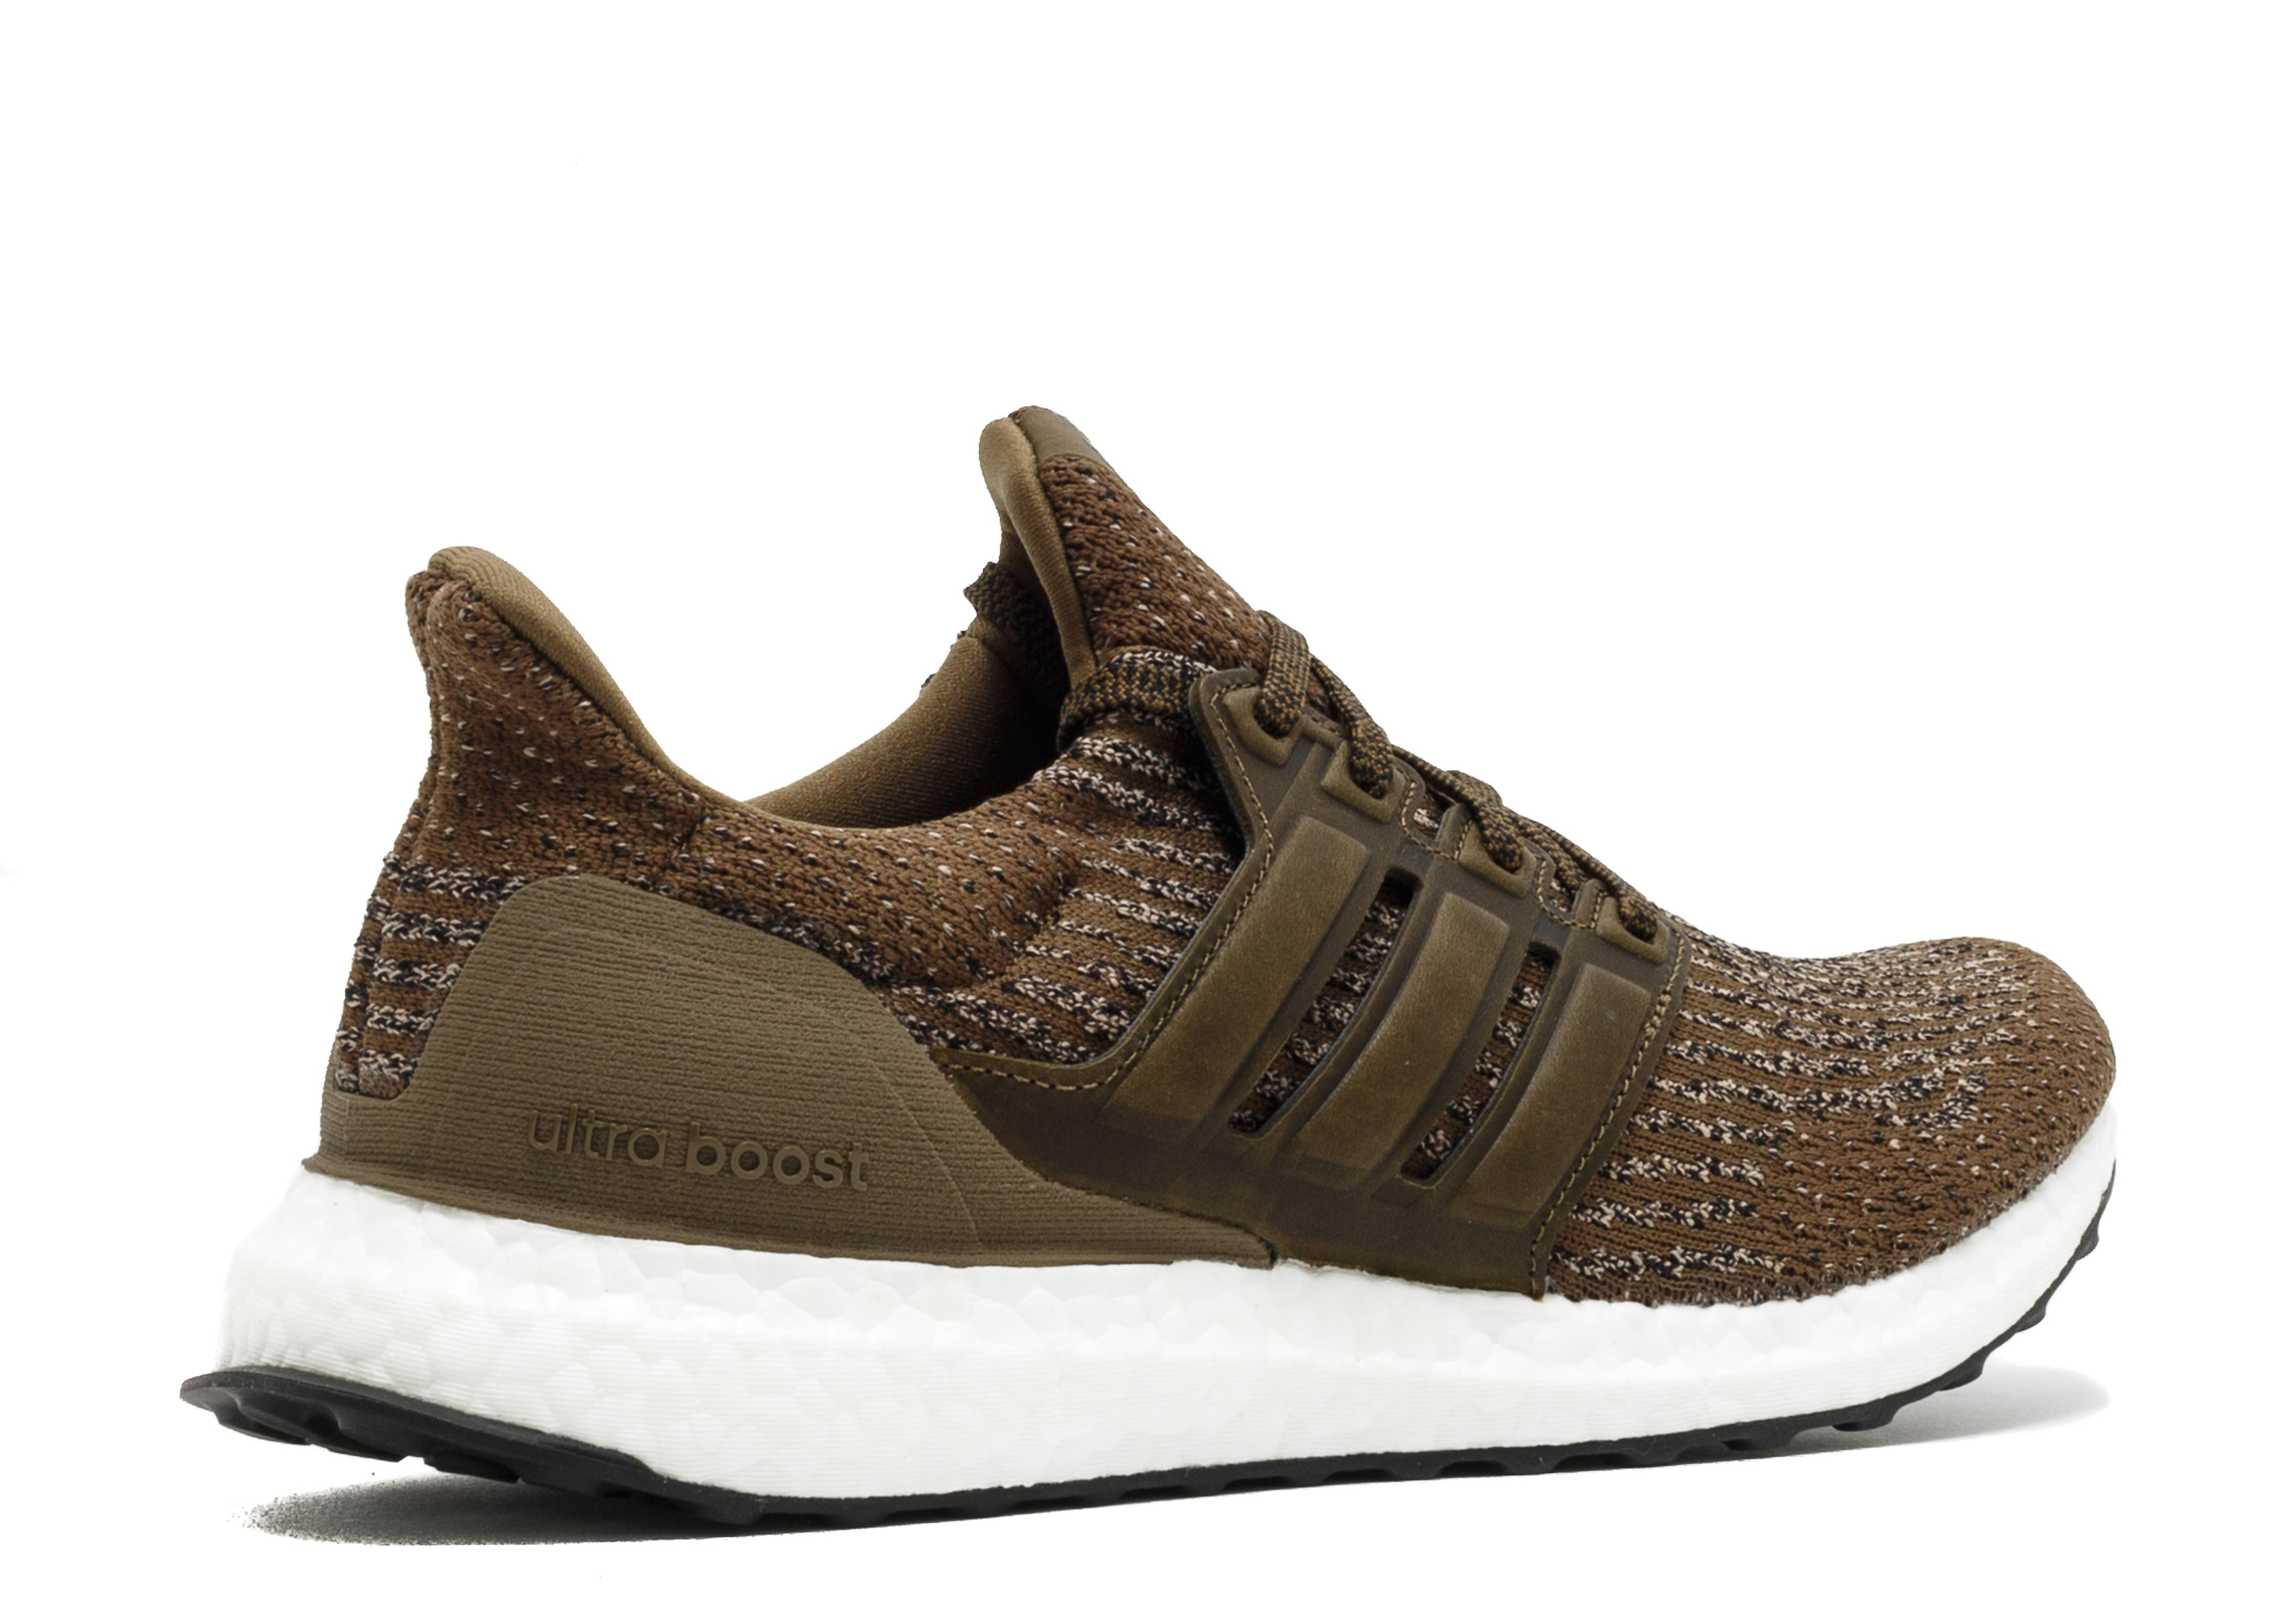 ff78d13ee28f4 Ultra Boost - Adidas - s82018 - trace olive trace khaki